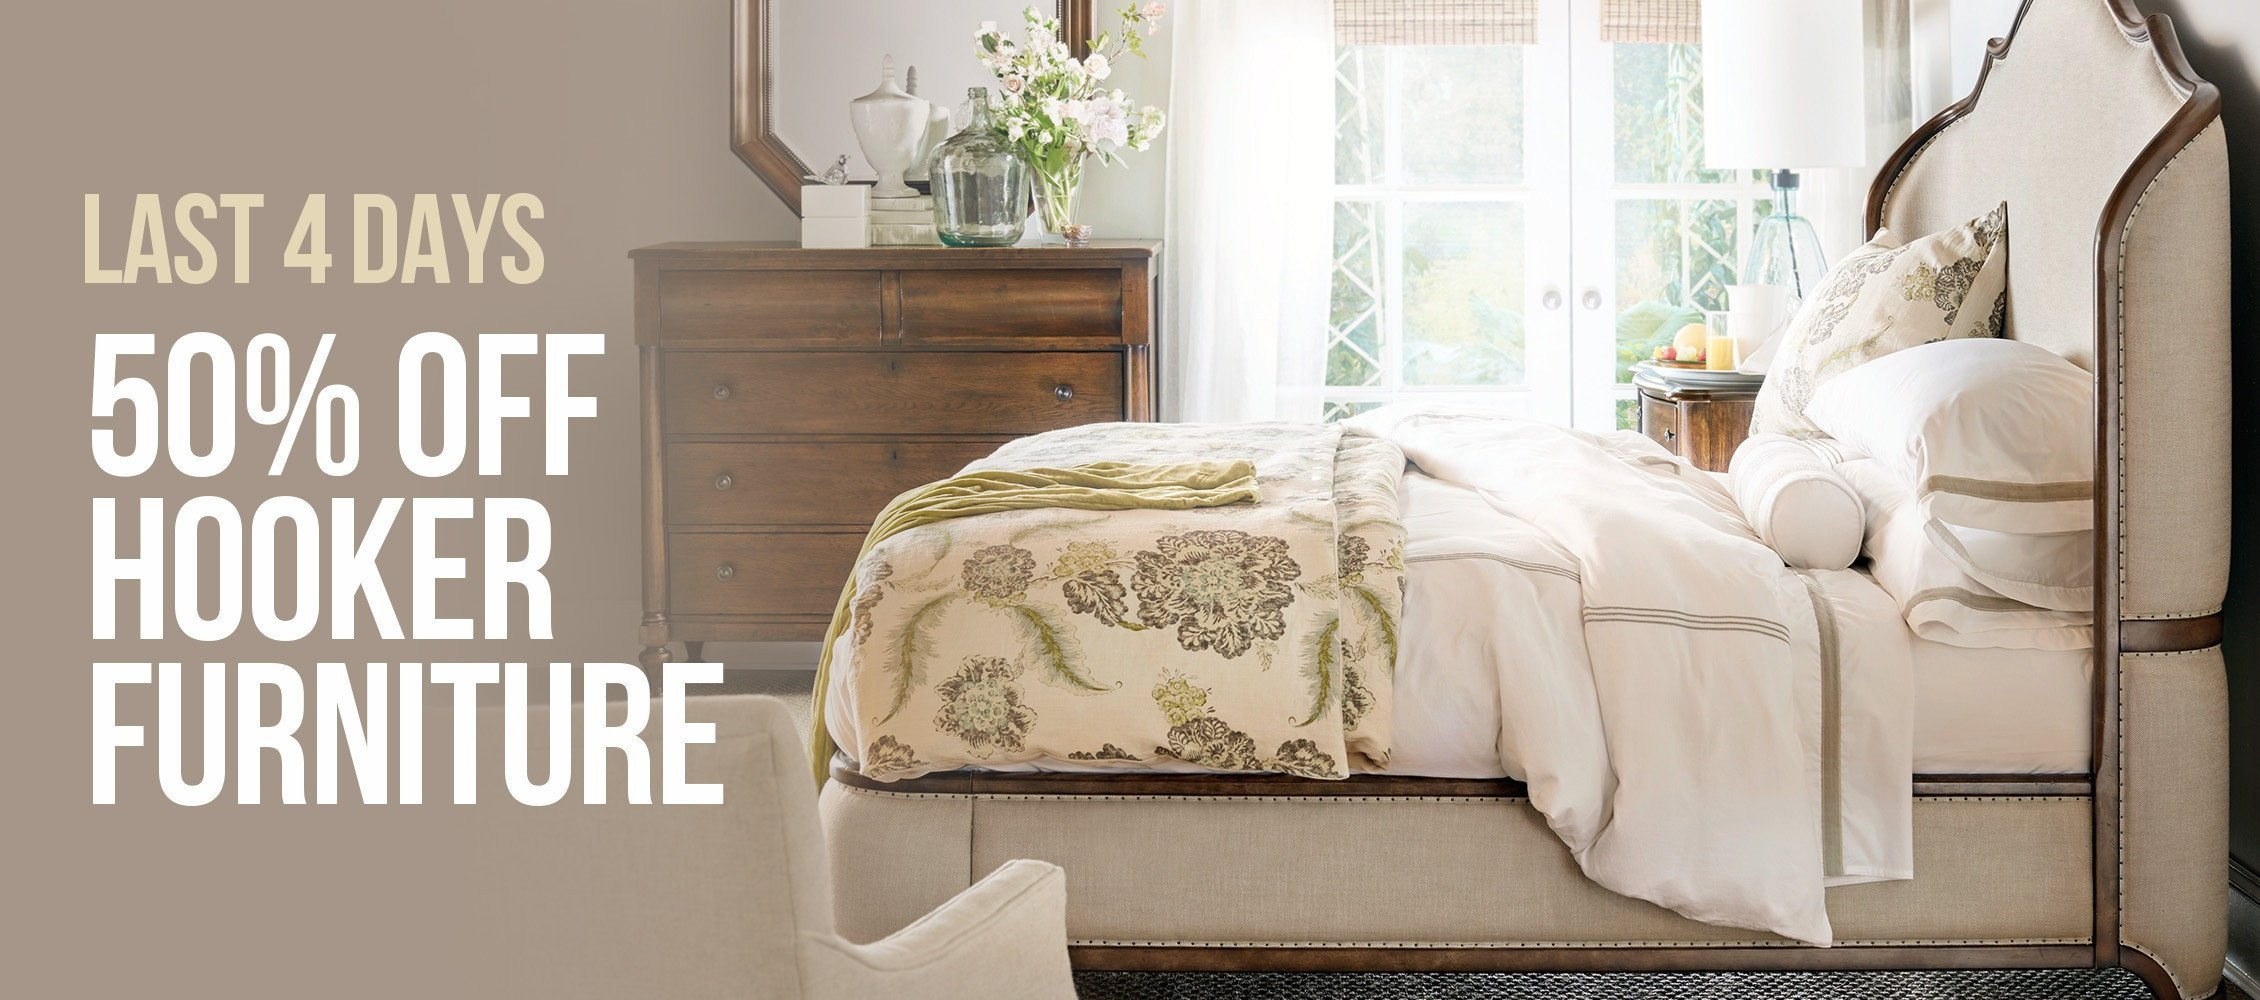 White Cottage Bedroom Furniture Elegant Gorman S Home Furnishings & Interior Design Quality